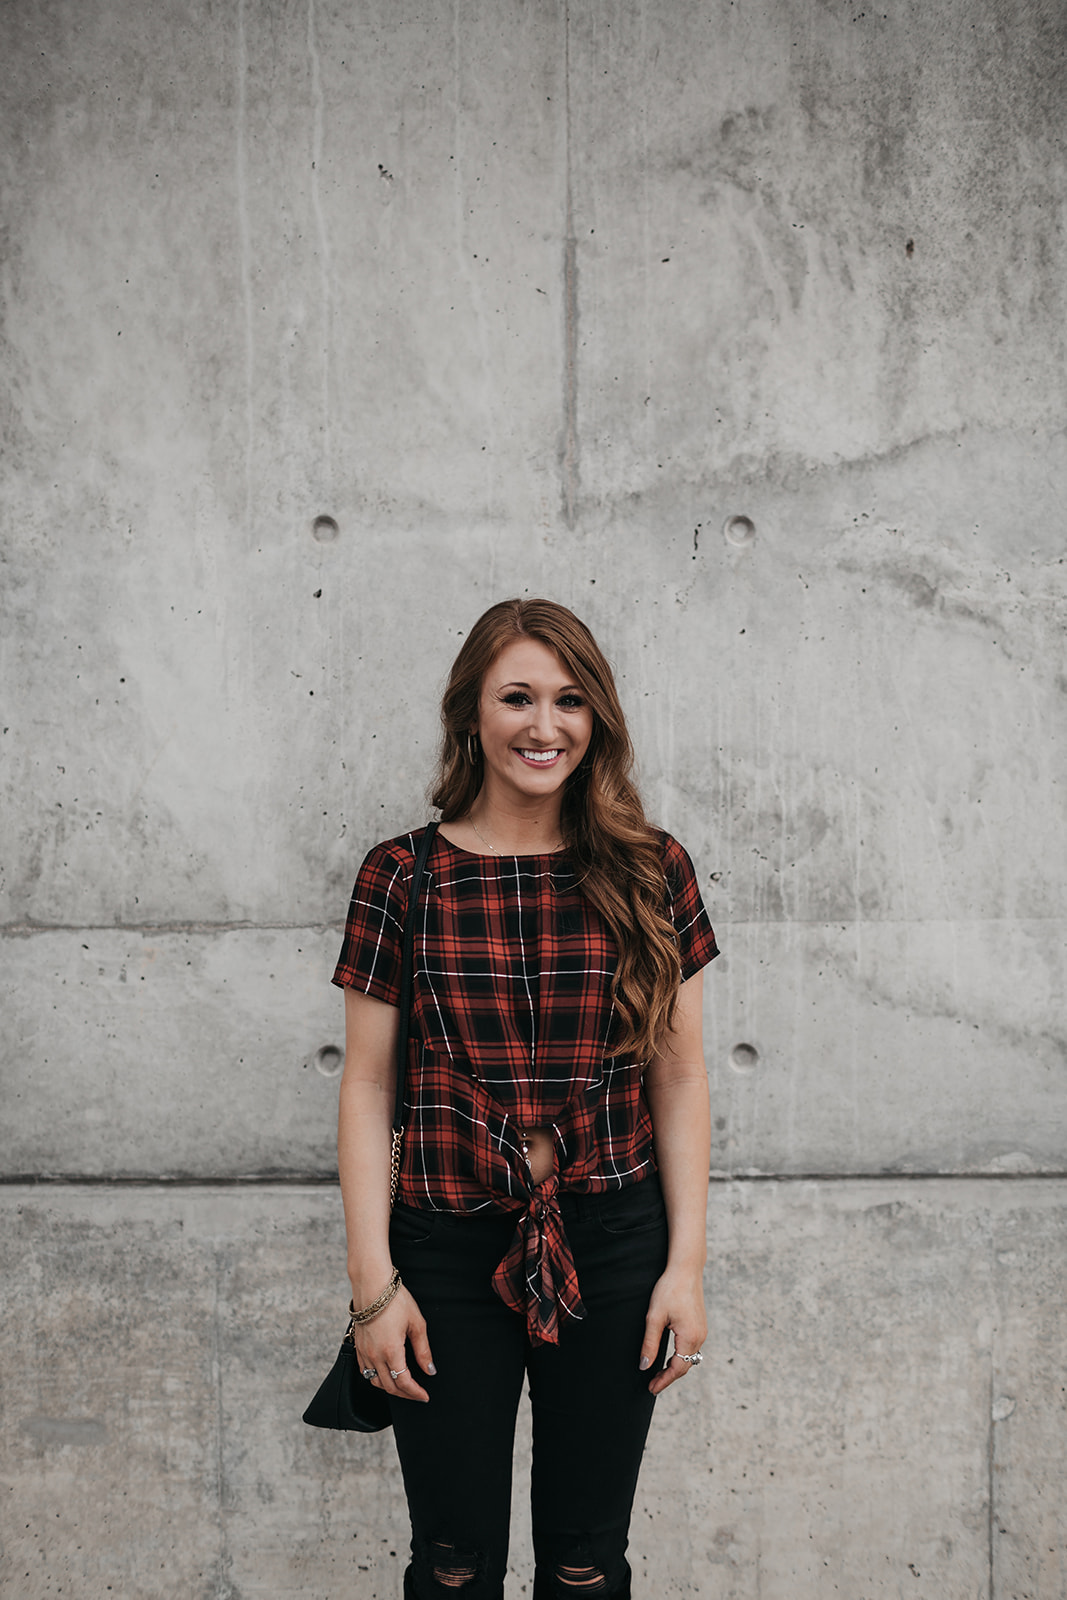 Red and Black Plaid for a Cool Fall Day | Chaos and Coffee-9081